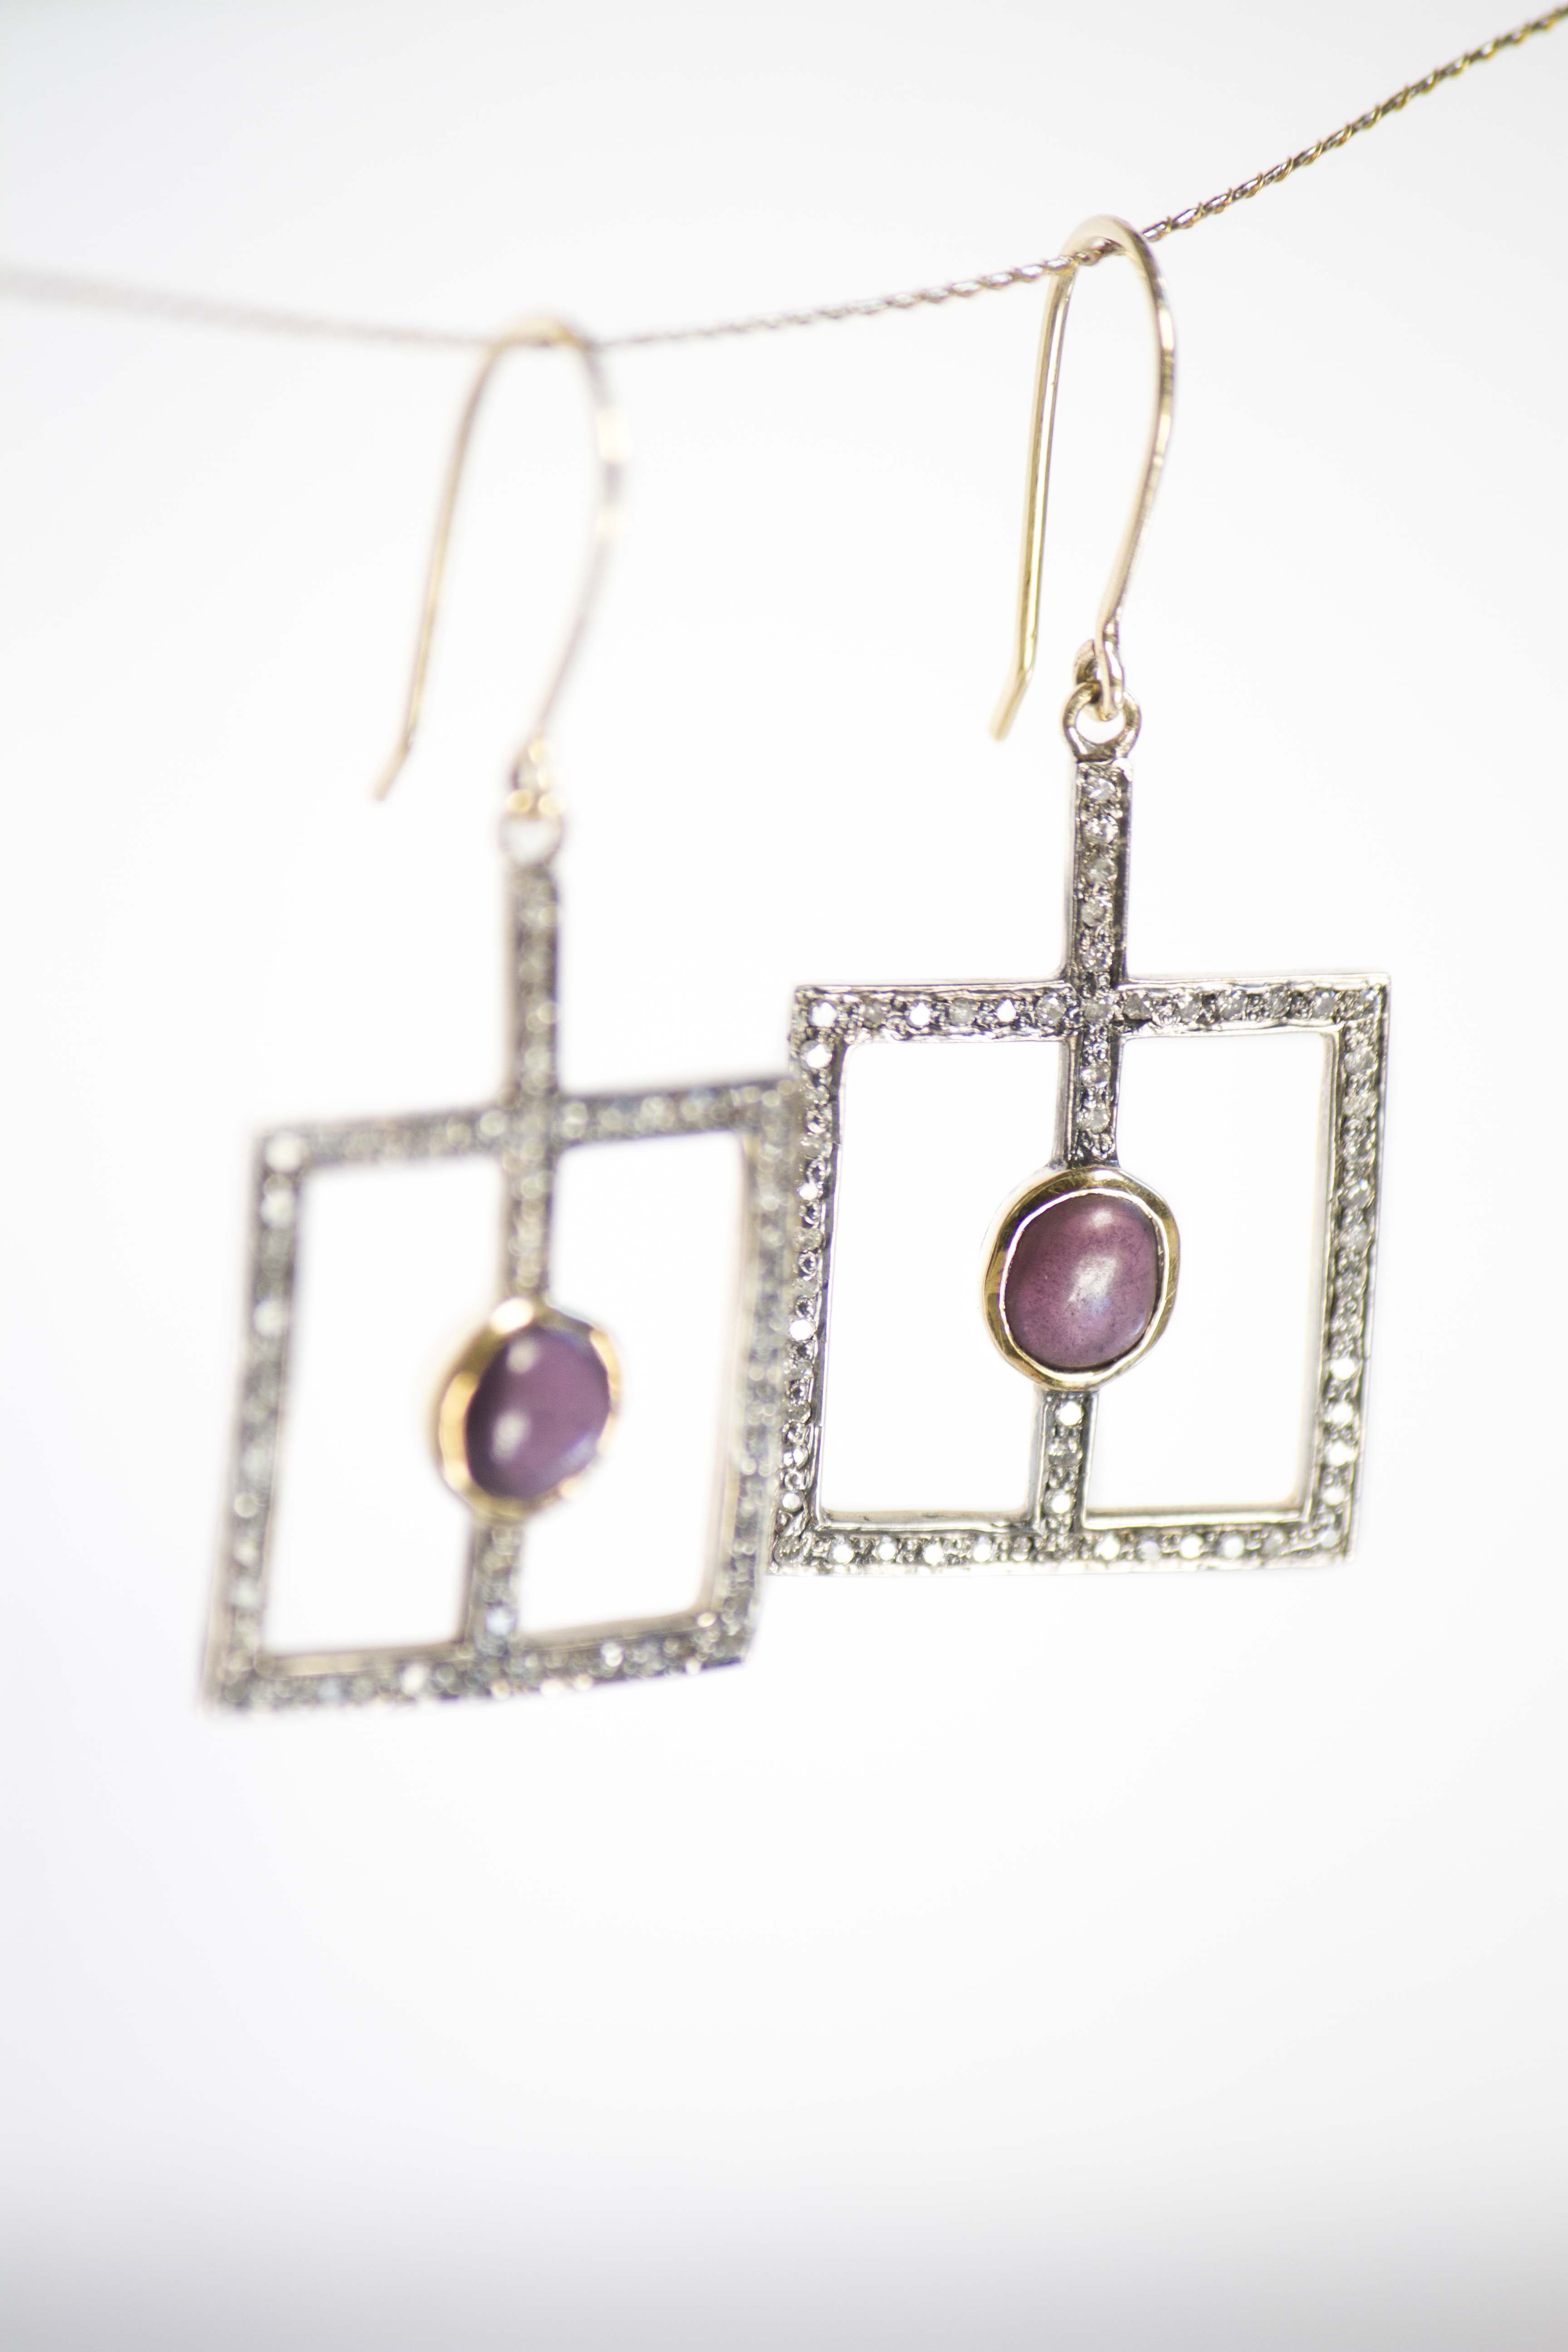 deco diamonds drop earrings Unique square drop earrings crafted in 14k yellow gold with diamond pave and rough spinels.